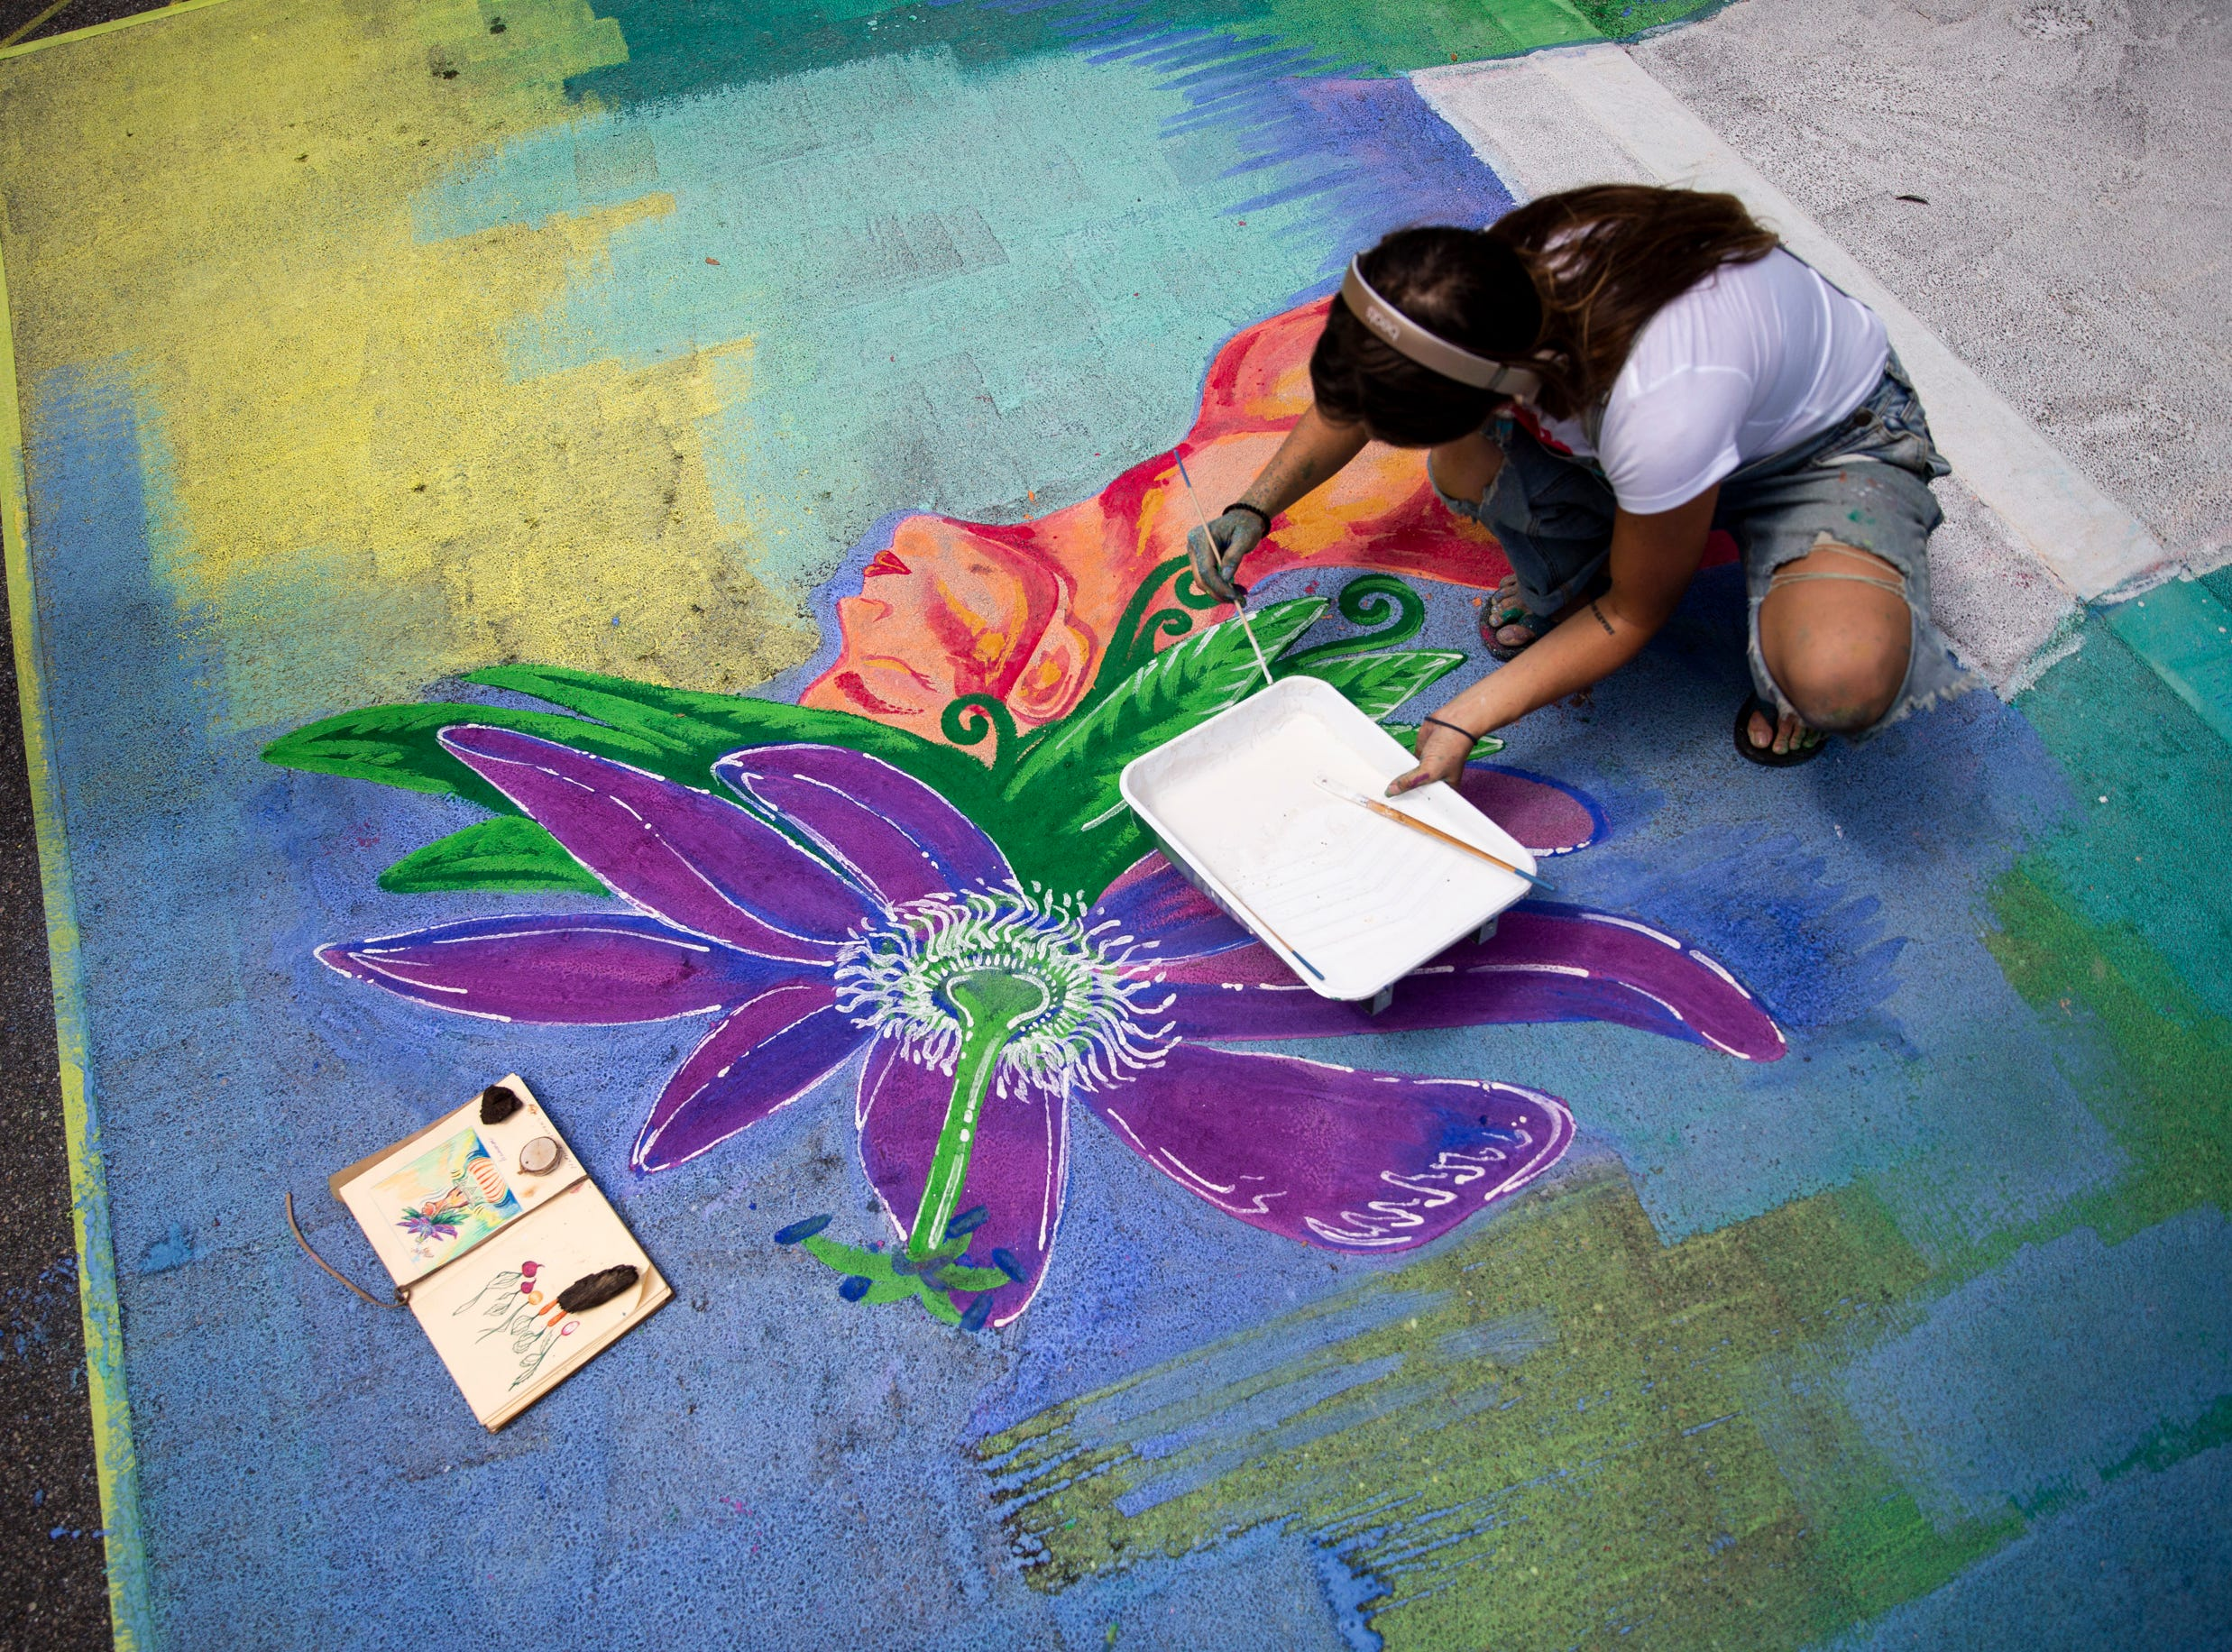 Jessica Perez works on her chalk artwork using her sketch book for reference during the Naples Chalk Art festival on Fifth Avenue South on Saturday, March 9, 2019.